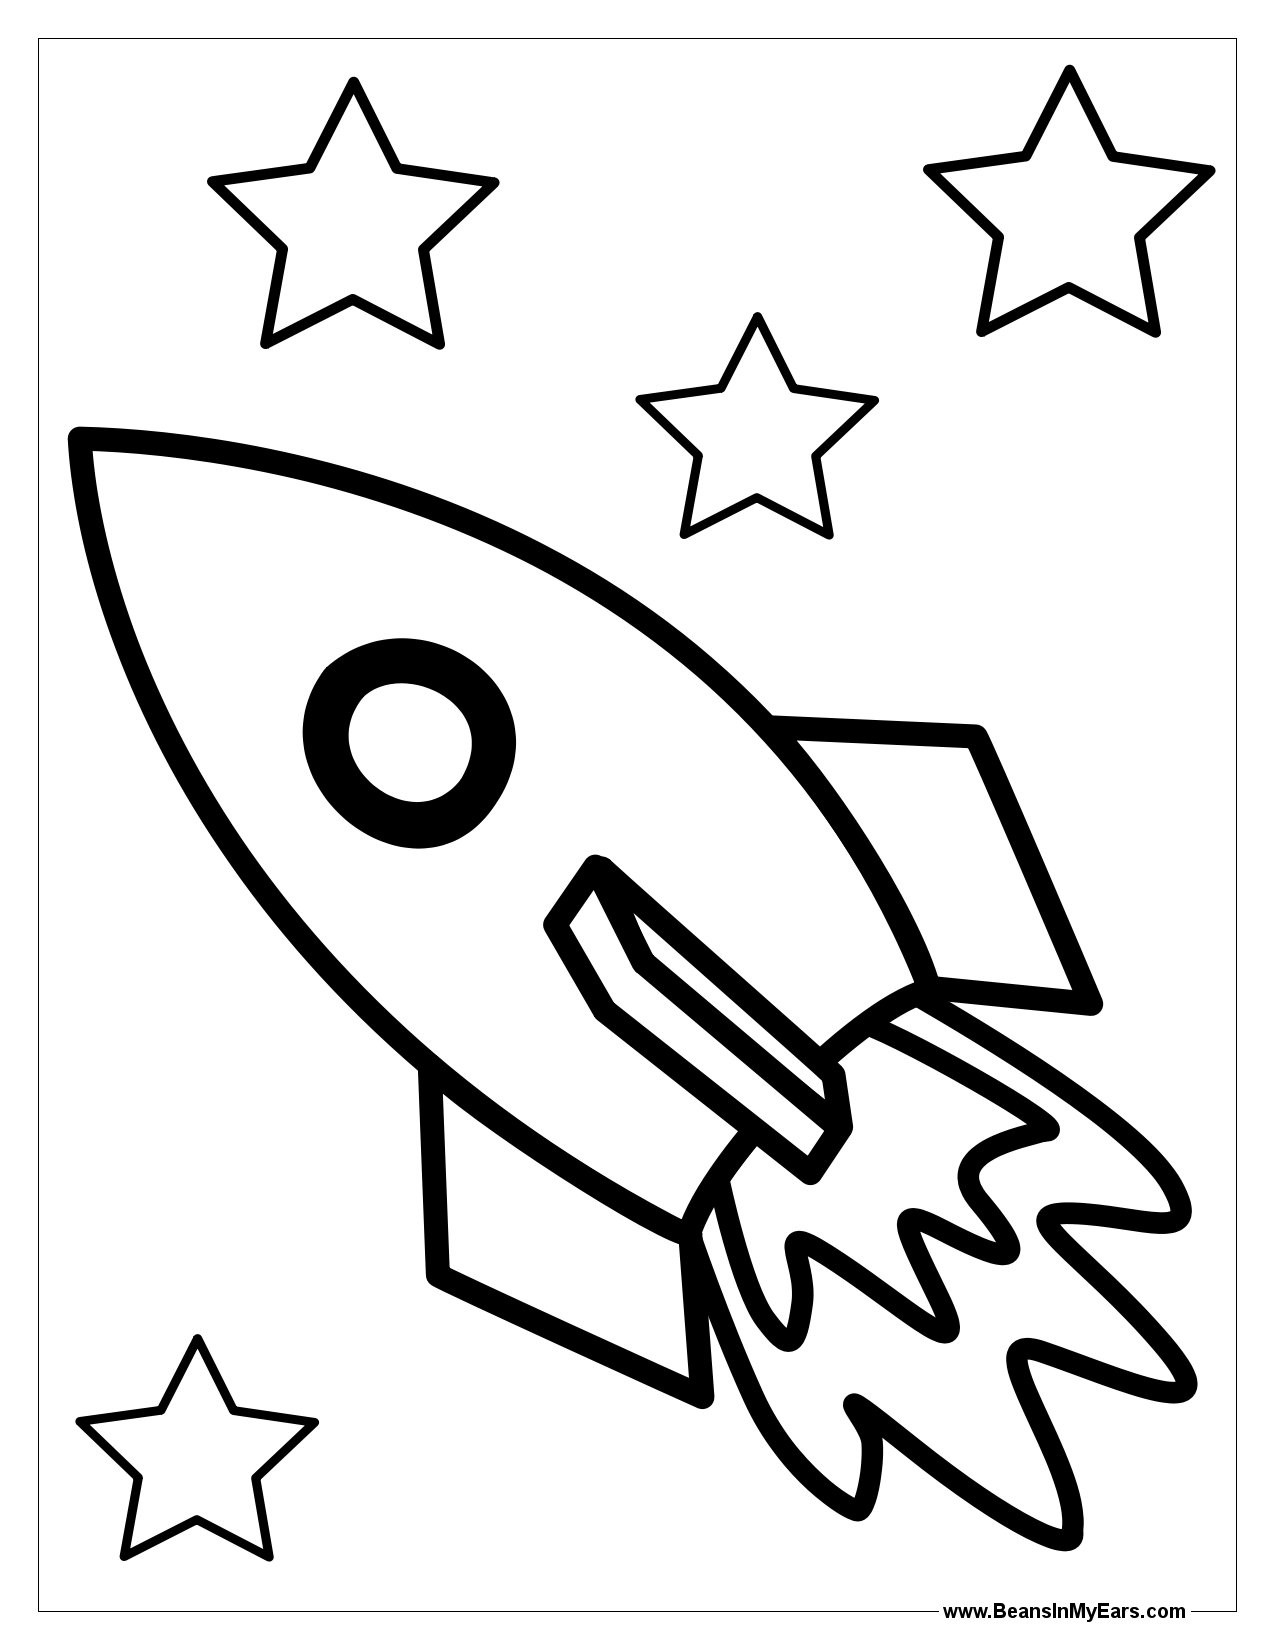 coloring page rocket space rocket coloring page at getdrawings free download coloring rocket page